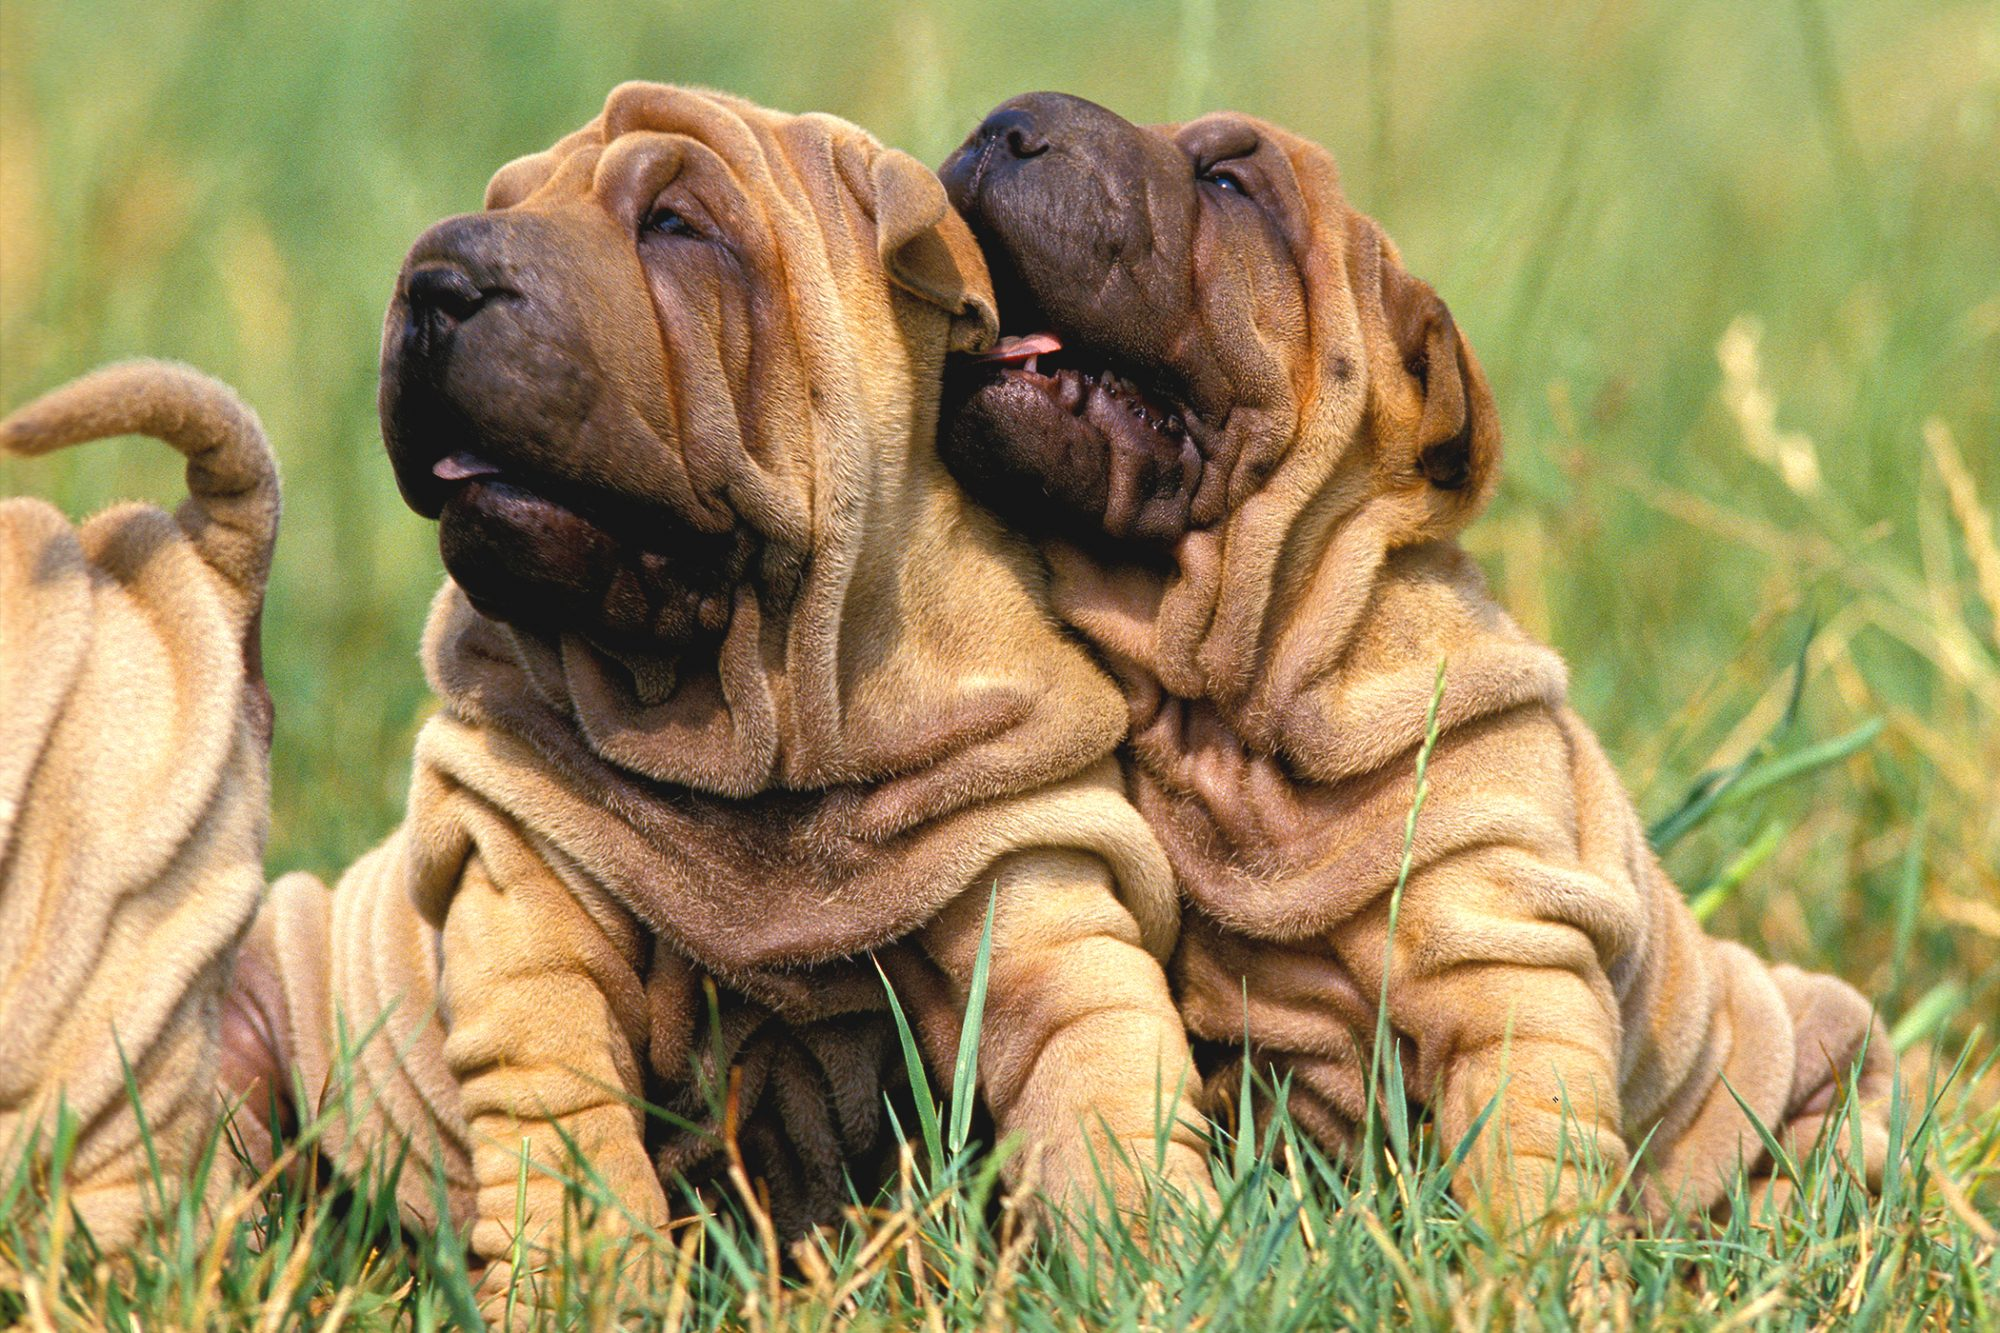 Two and a half shar-pei puppies cuddle in long grass